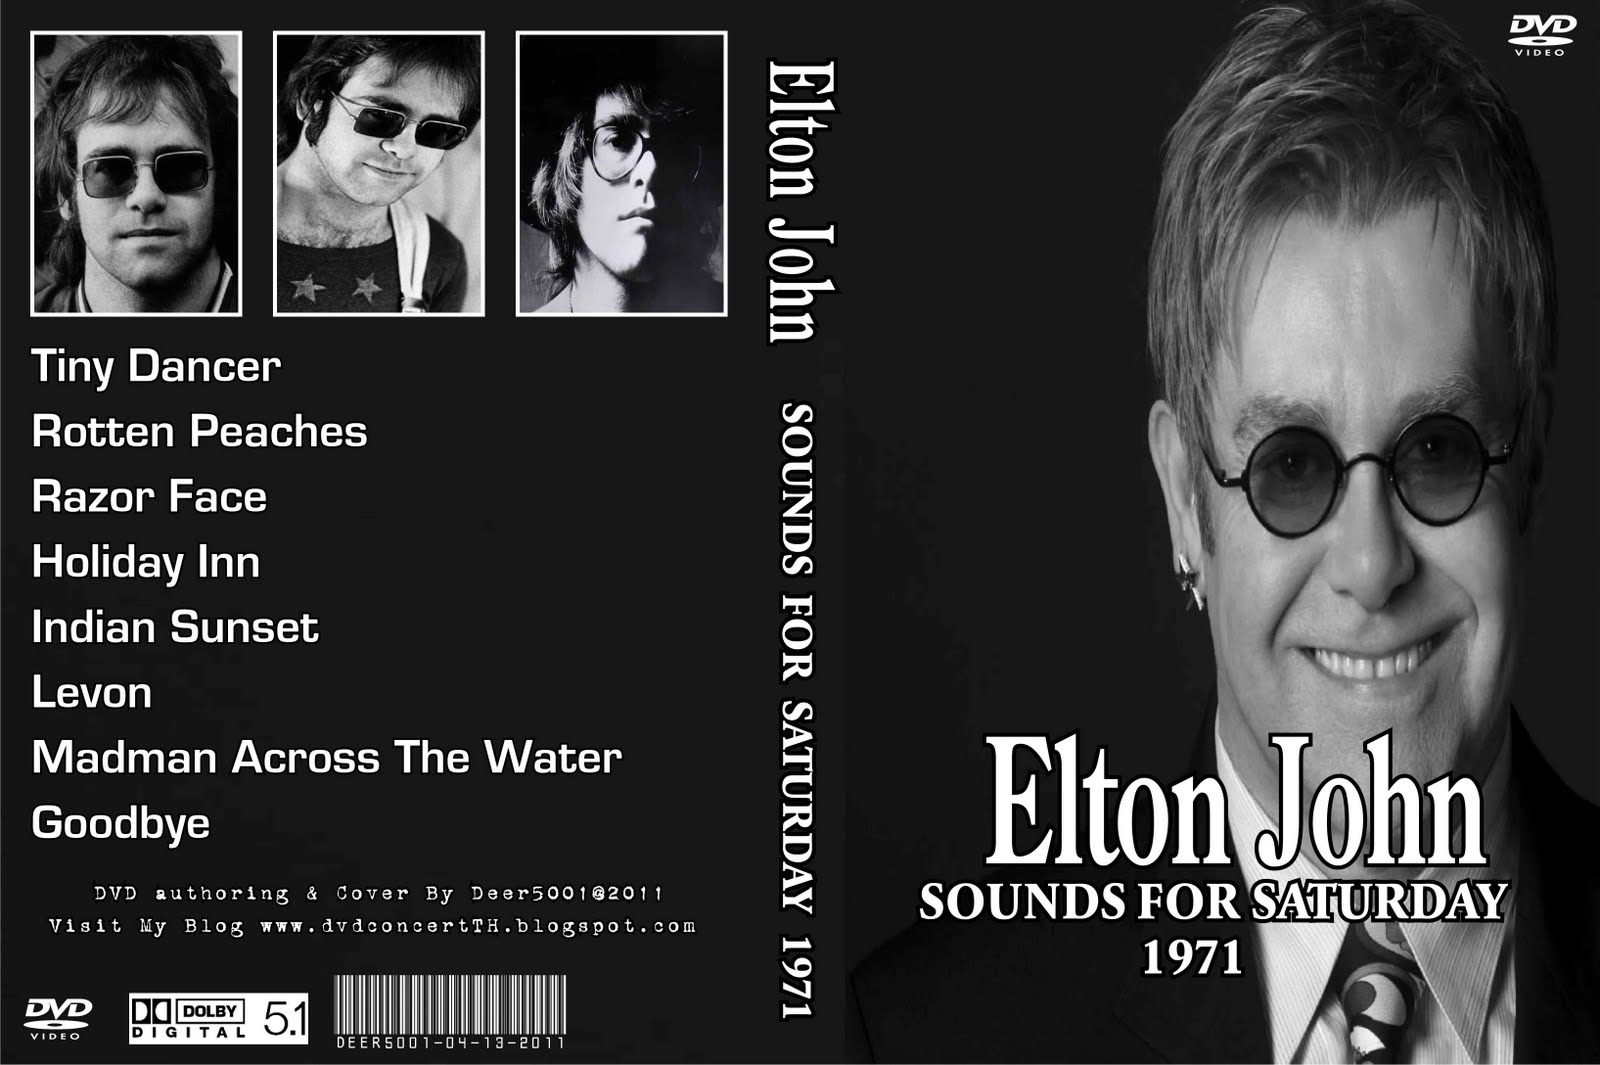 http://3.bp.blogspot.com/-vuQ2M5Da-3o/Tafs4lU3DTI/AAAAAAAACg0/o6AJp84gWb8/s1600/DVD+Cover+Low+Quality++-+Elton+John+-+SOUNDS+FOR+SATURDAY+1971.jpg